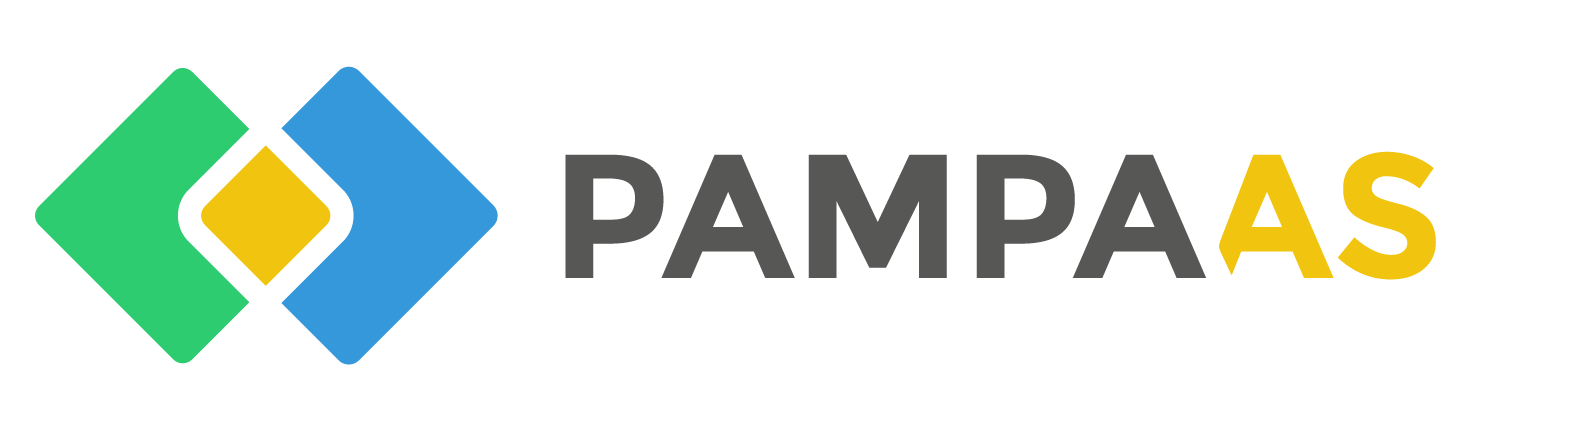 PAMPAAS